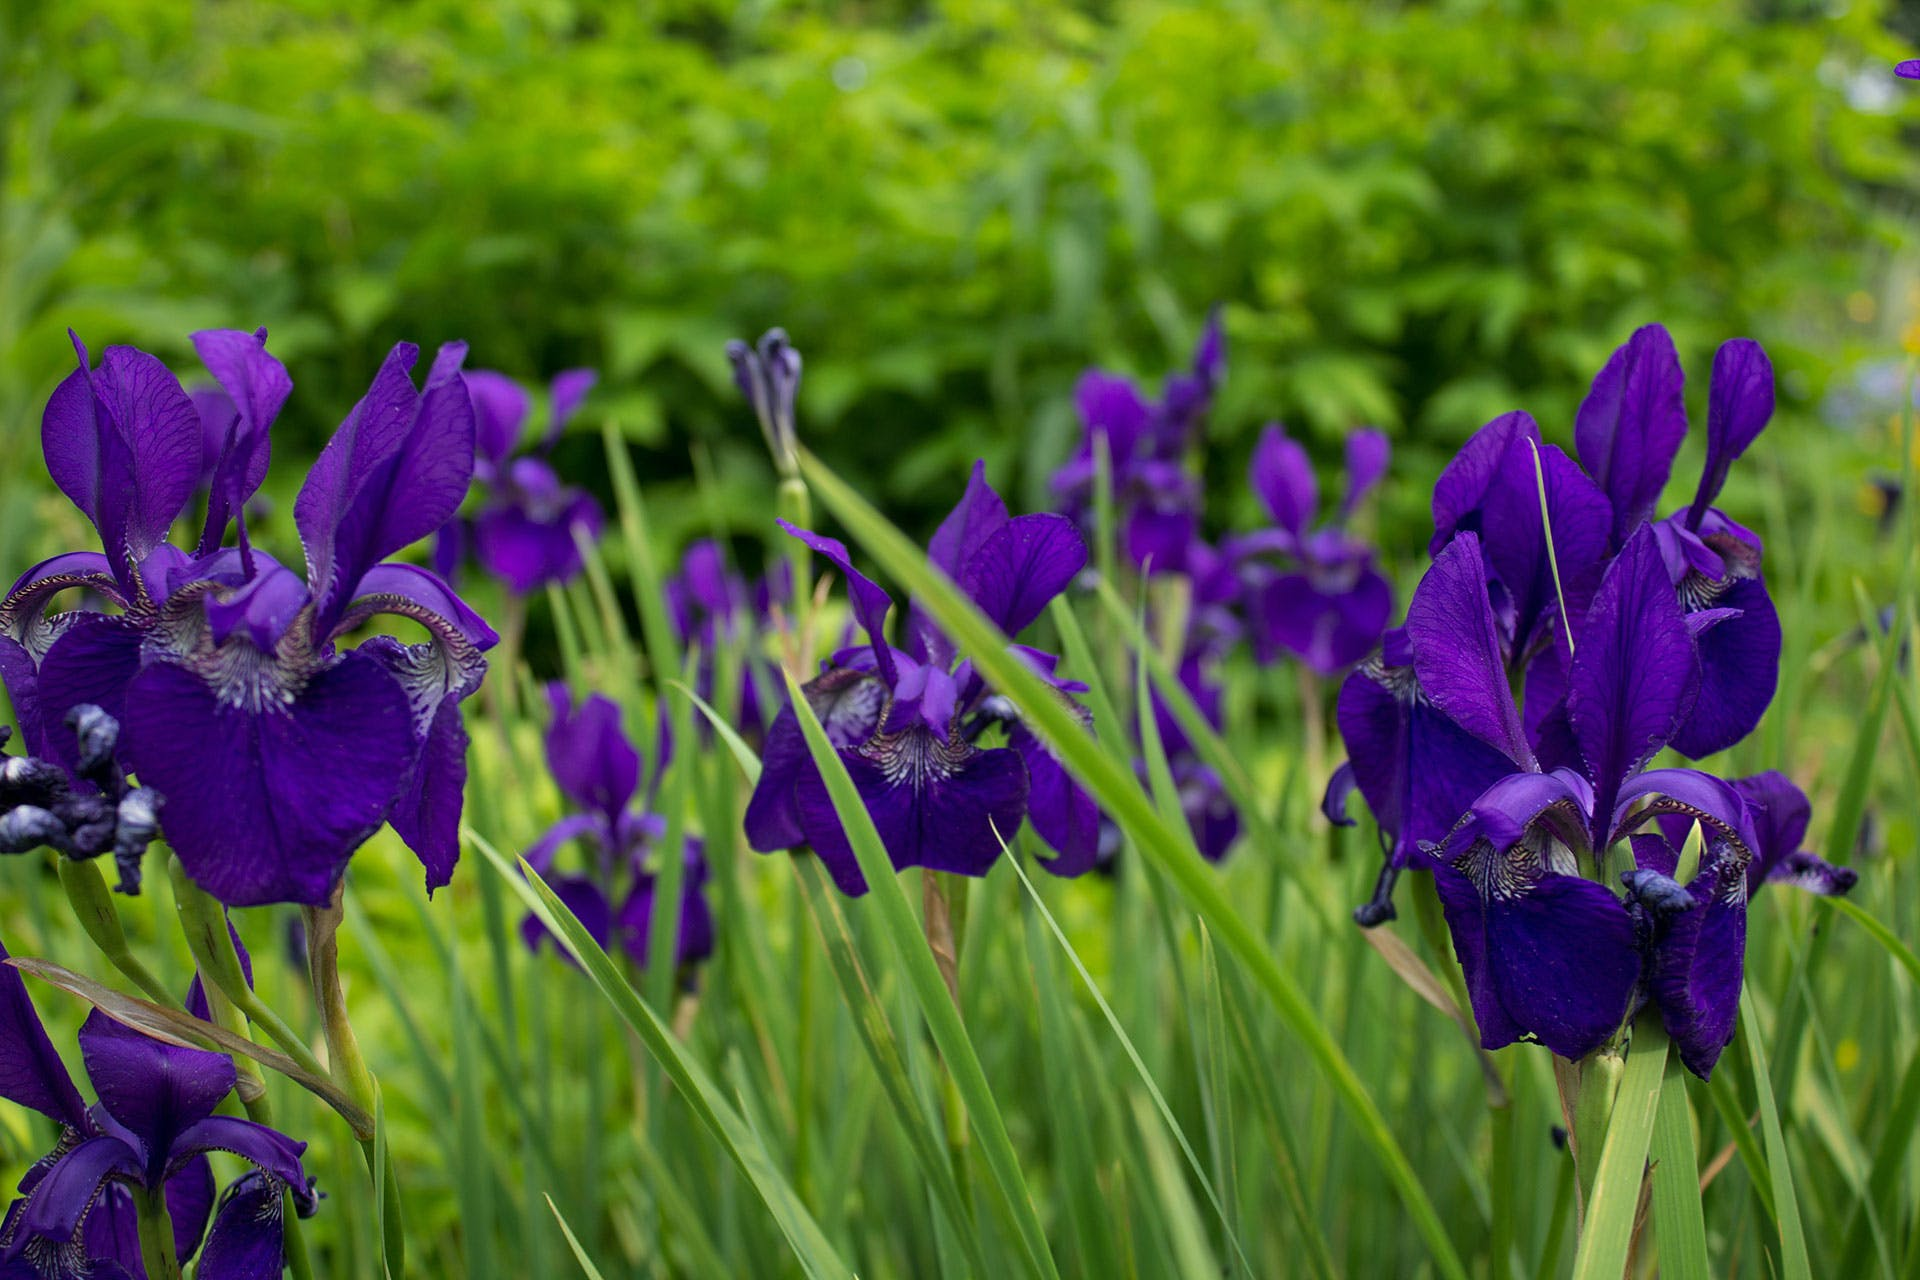 Selective Focus Photography of Iris Flowers